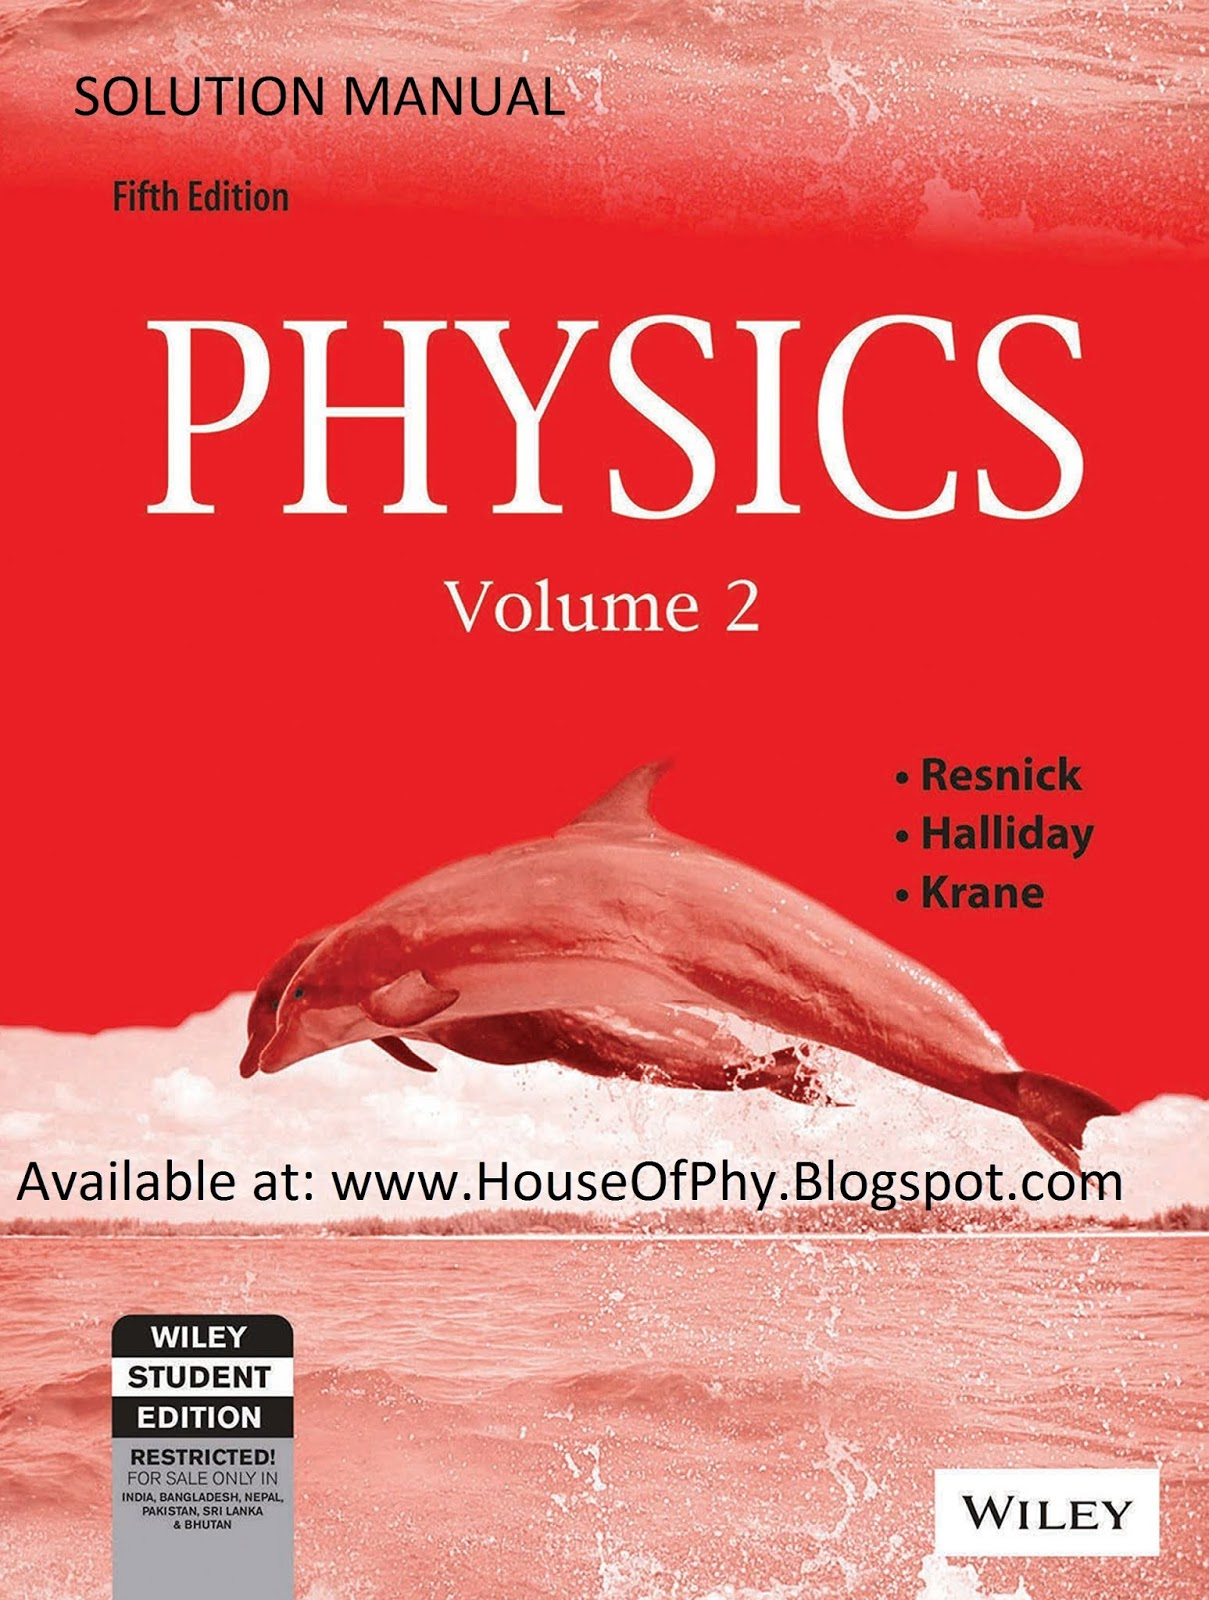 Solution Manual of Physics by Halliday, Resnick, Krane Volume 2